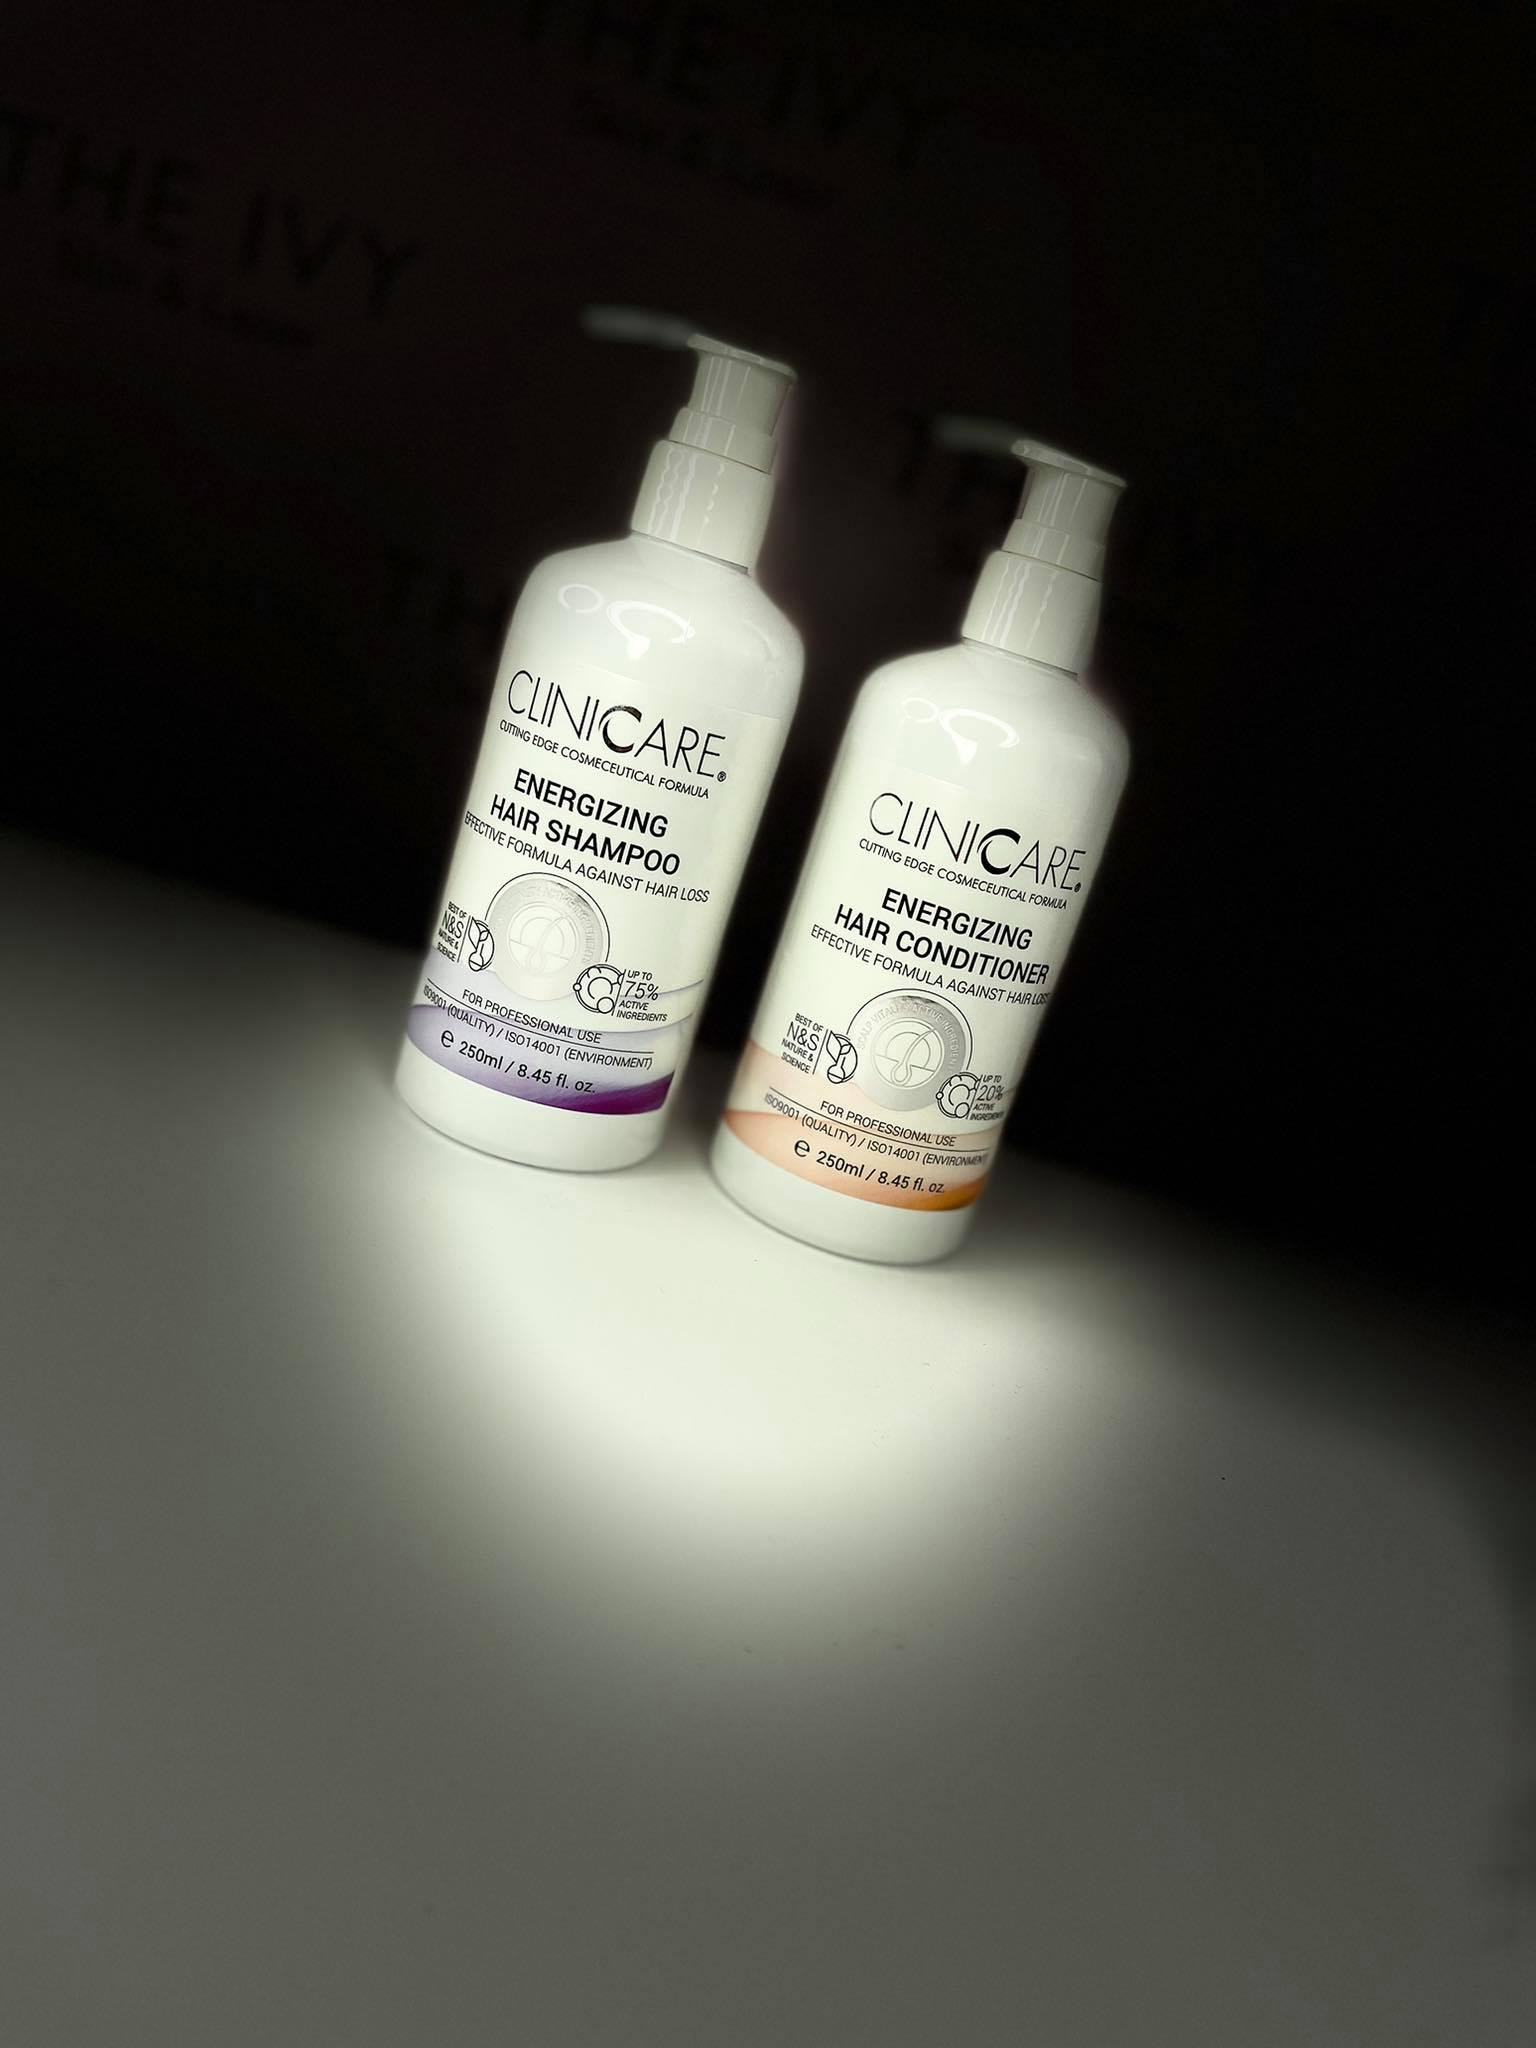 Clinicare Hair Duo Set